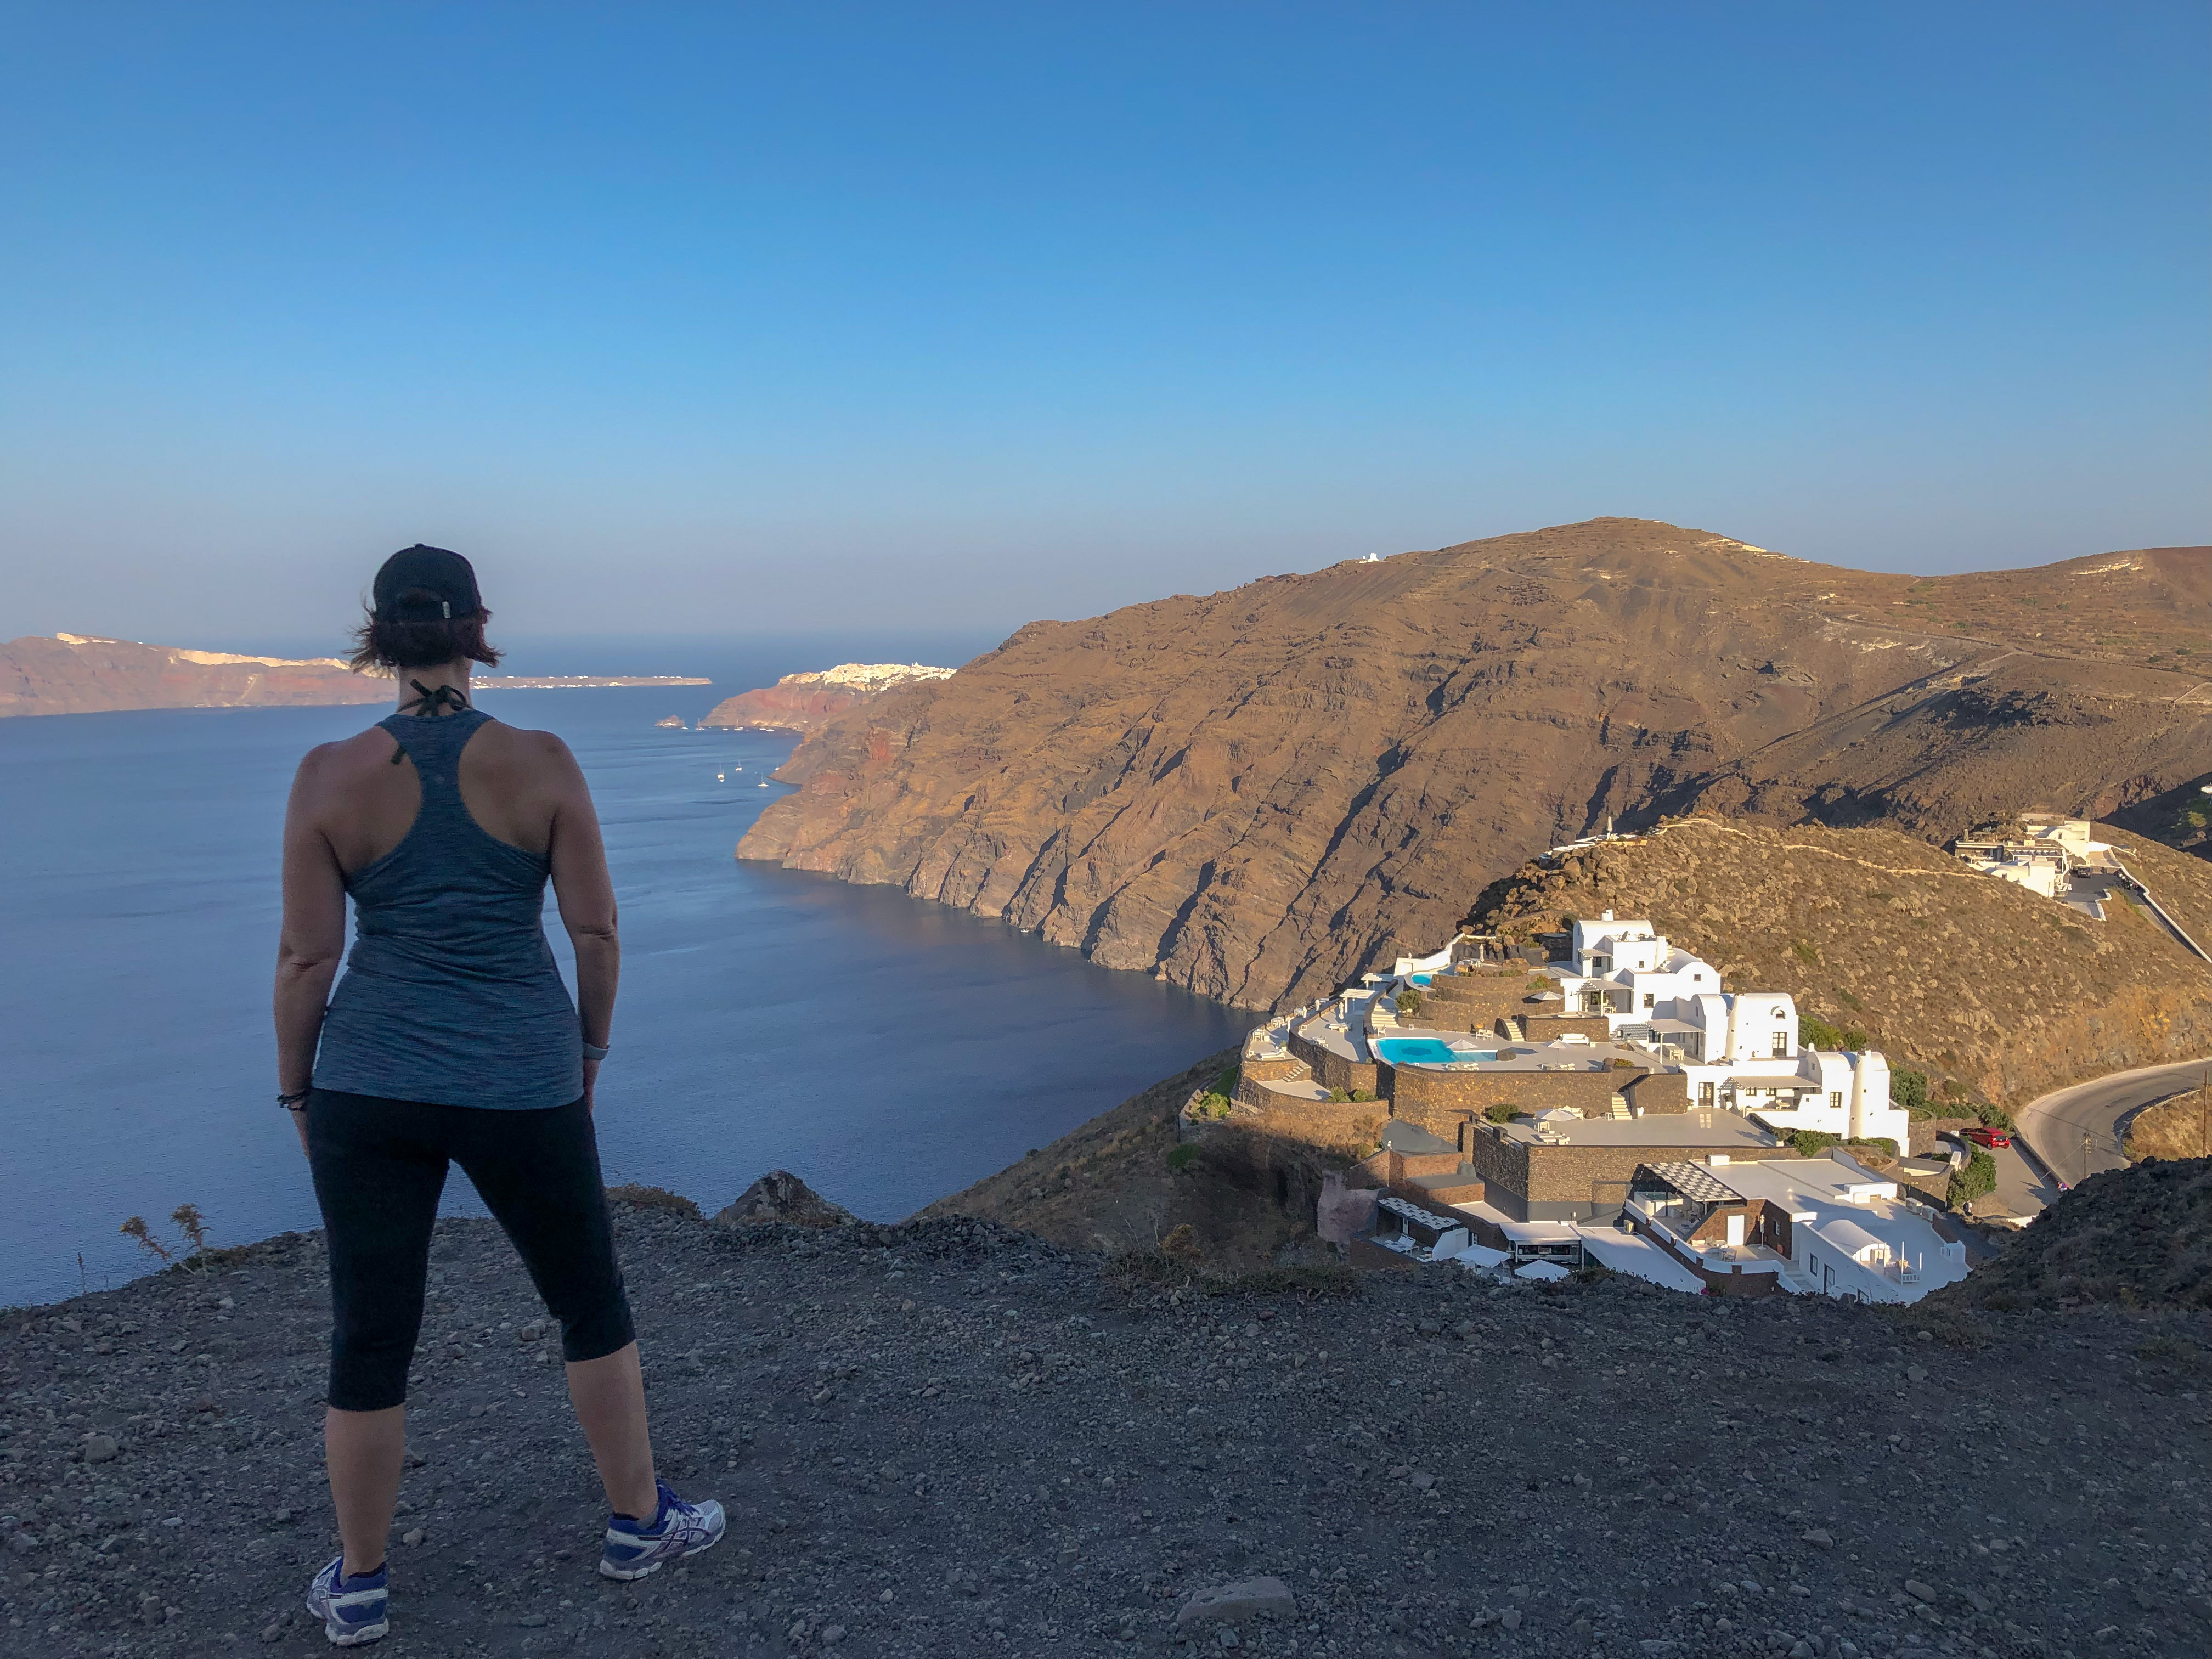 Standing in Imerovigli and staring at Oia in the distance, wondering if I can hike there before the heat sets in.